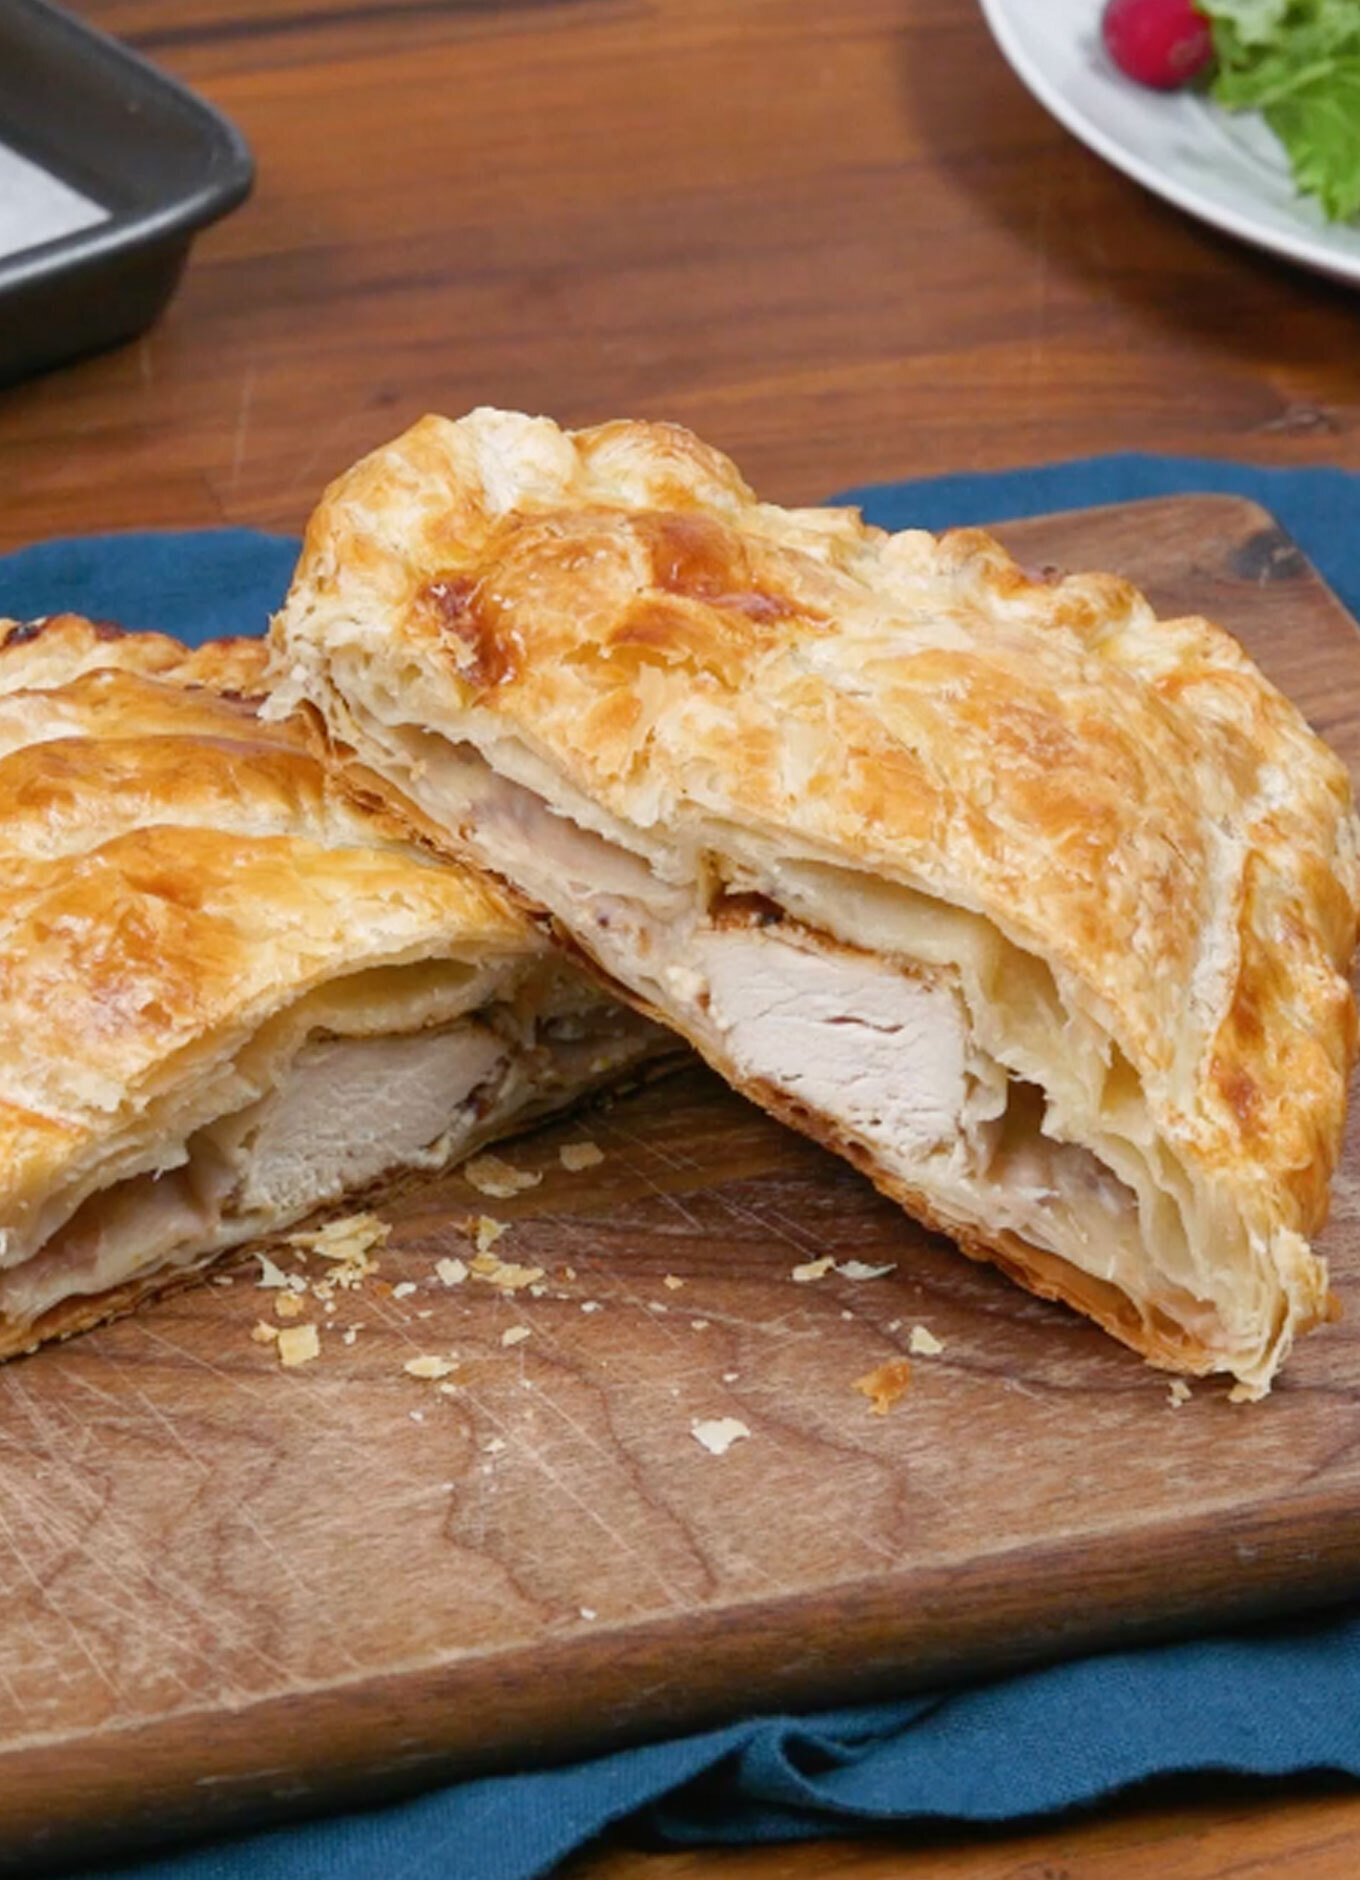 Flaky pastry filled with Chicken, herbs, cranberries, and cream cheese on a festive table setting.